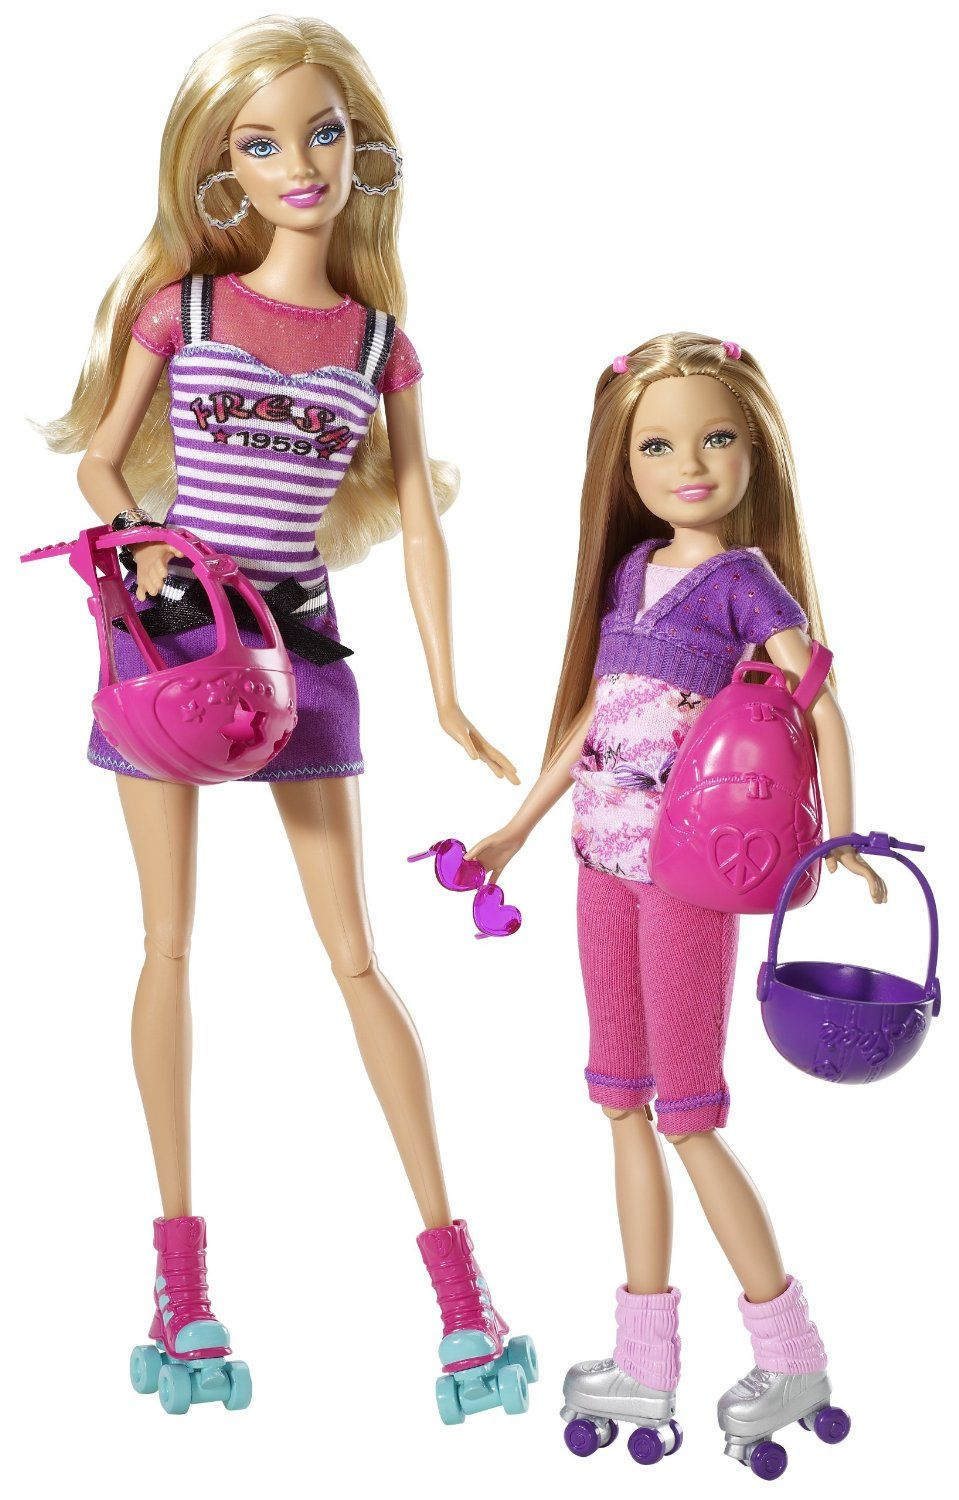 Barbie deluxe furniture stovetop to tabletop kitchen doll target - Amazon Com Barbie Sisters Barbie And Stacie Dolls 2 Pack Toys